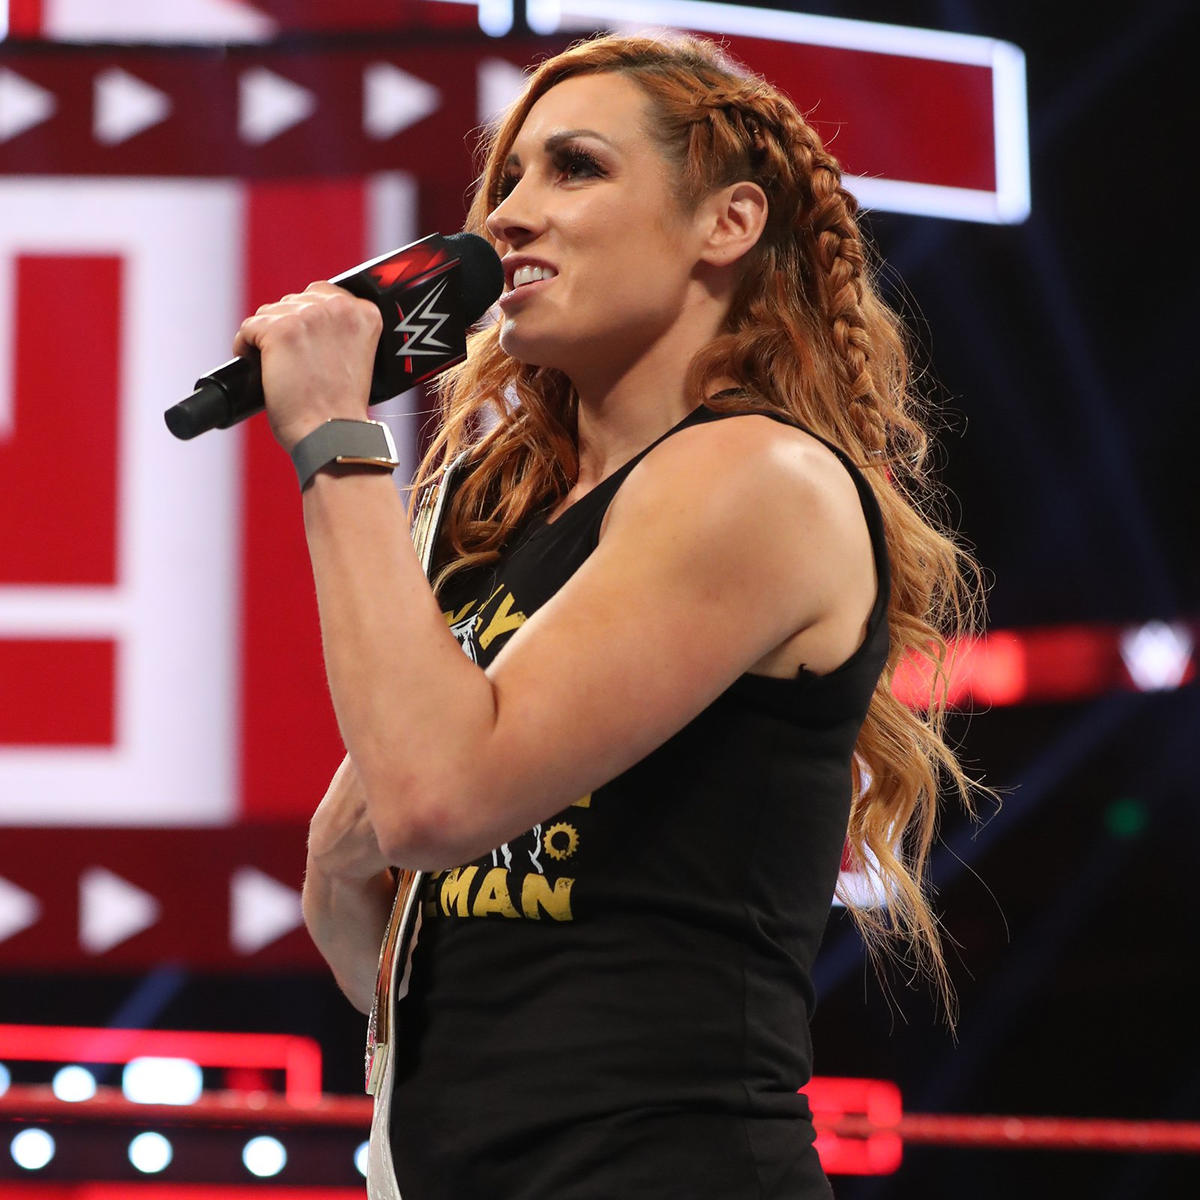 The Man knows that contentment is the worst thing that can happen to a fighter like her, and she claims that something woke up in her when Lacey Evans helped Charlotte Flair beat her for the SmackDown Women's Title at WWE Money in the Bank.